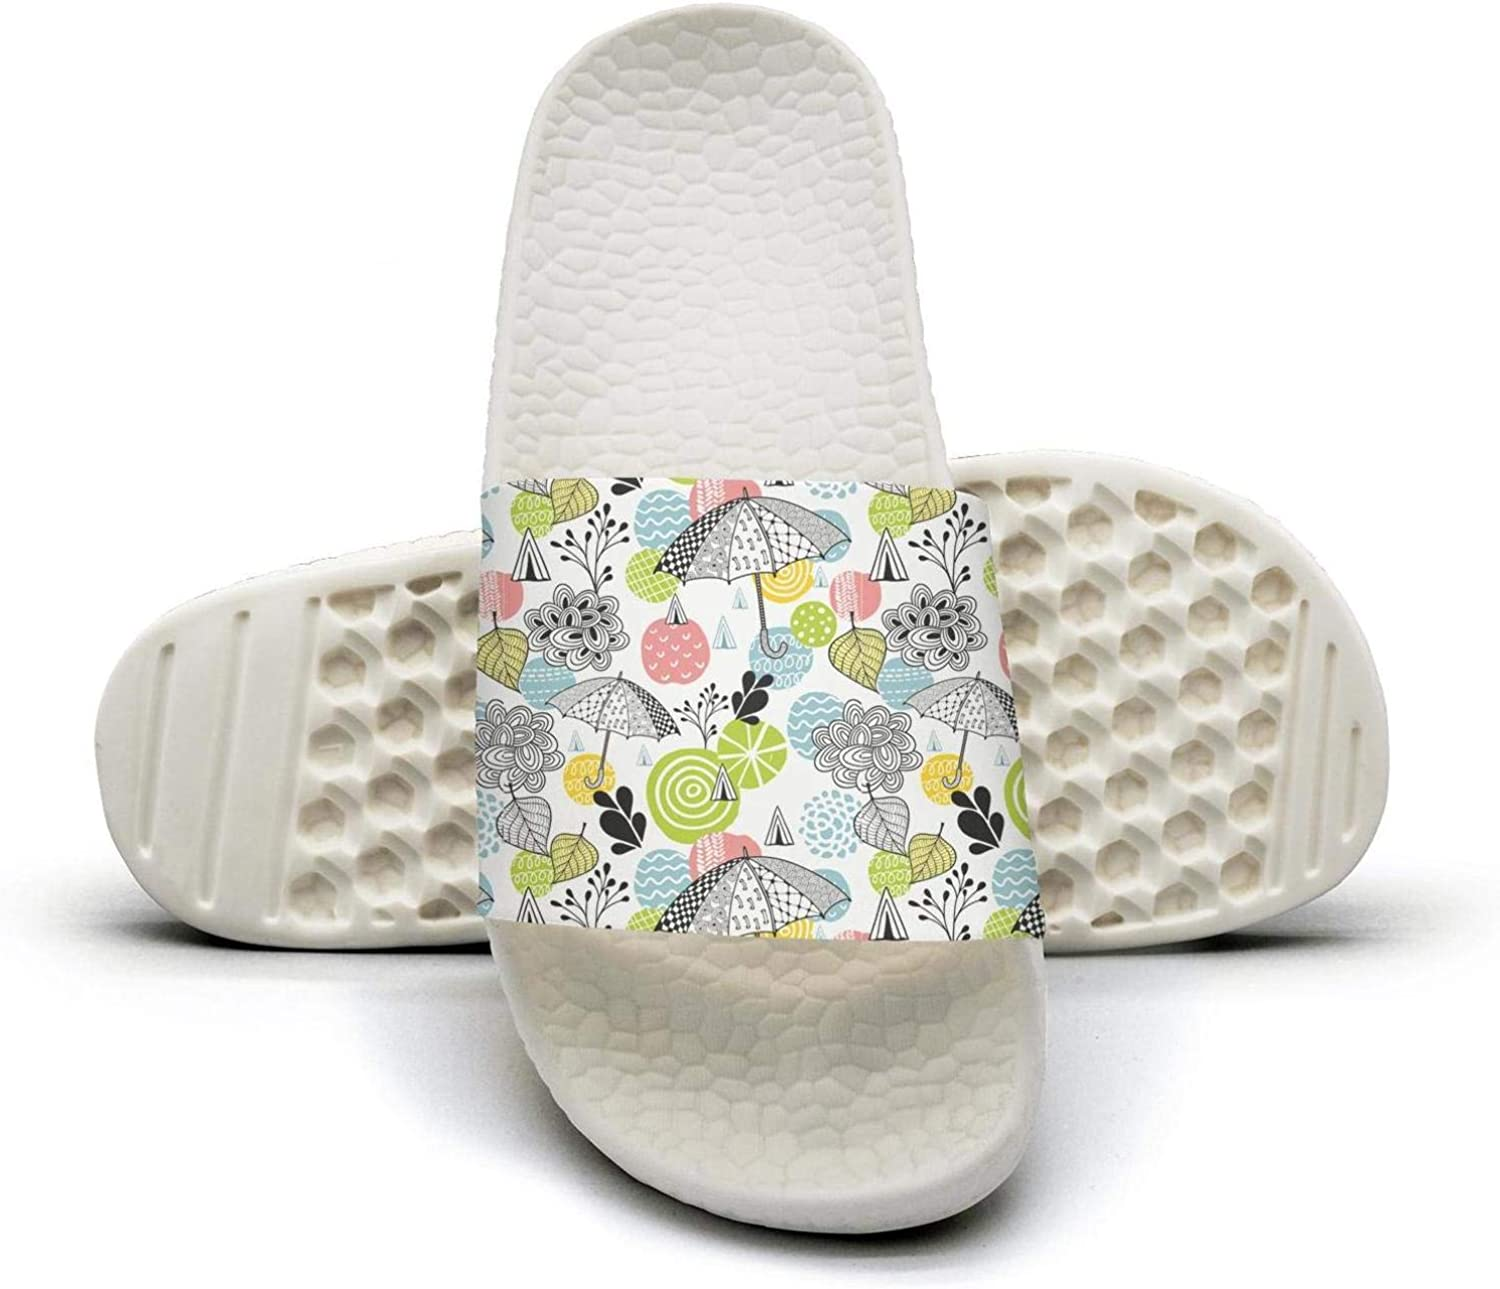 Ina Fers.Slide Sandals For Women Abstract Spring Time colorful Umbrellas Indoor Bath Slipper Anti-Slip House Sandal